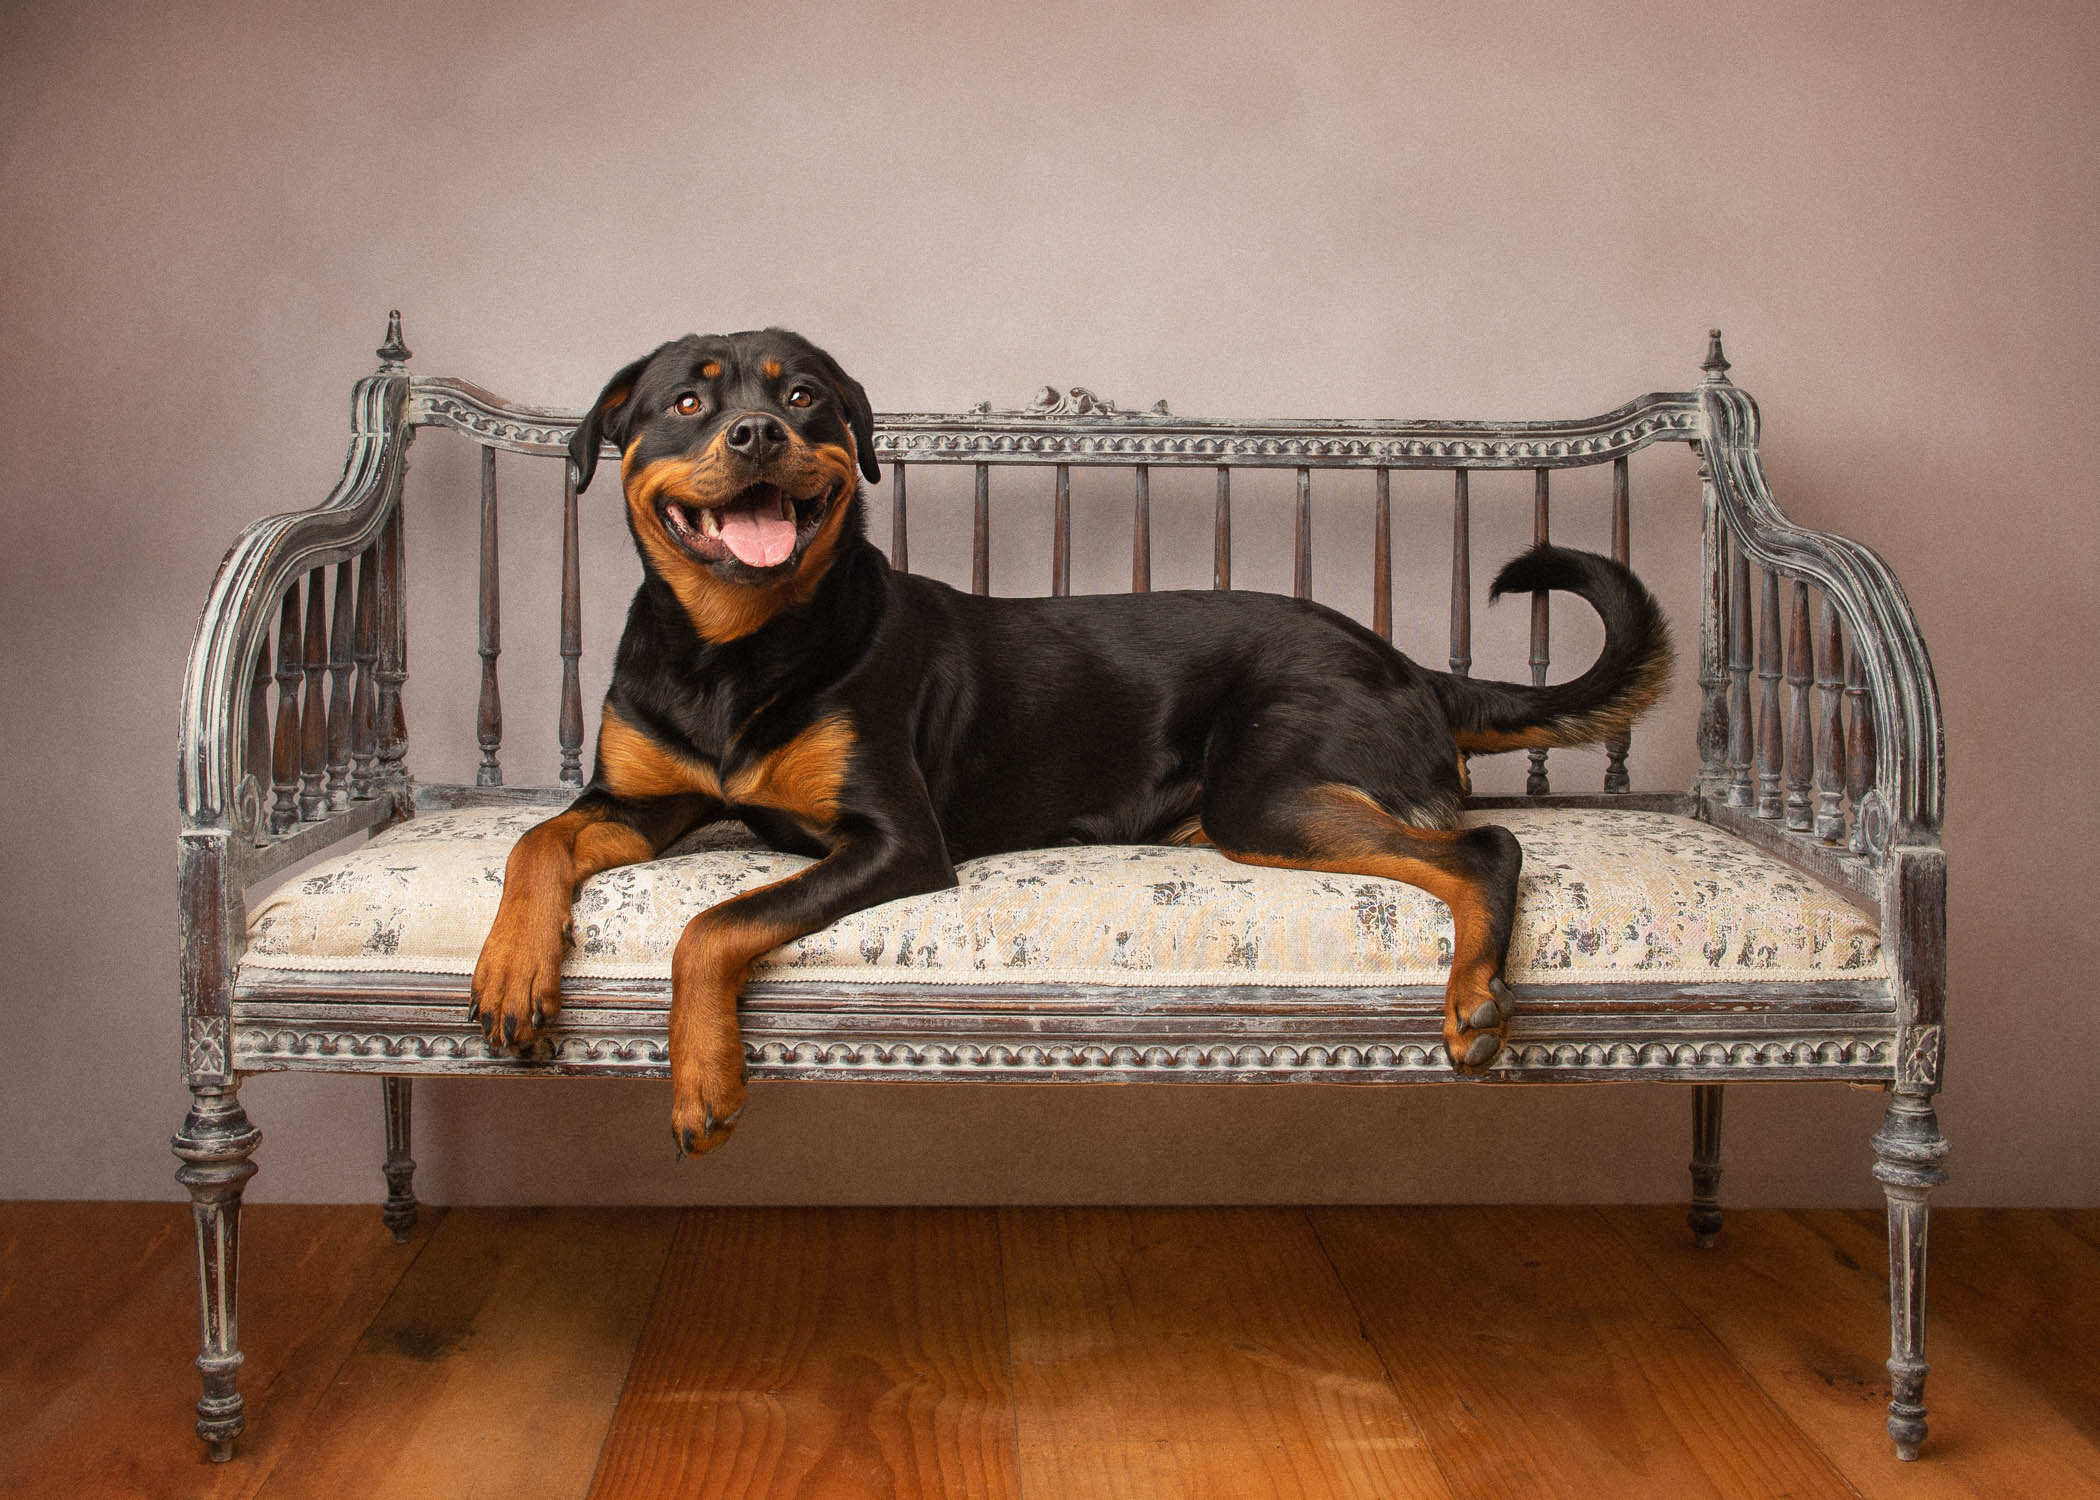 dog on couch by dog photographer siobhan kelly photography